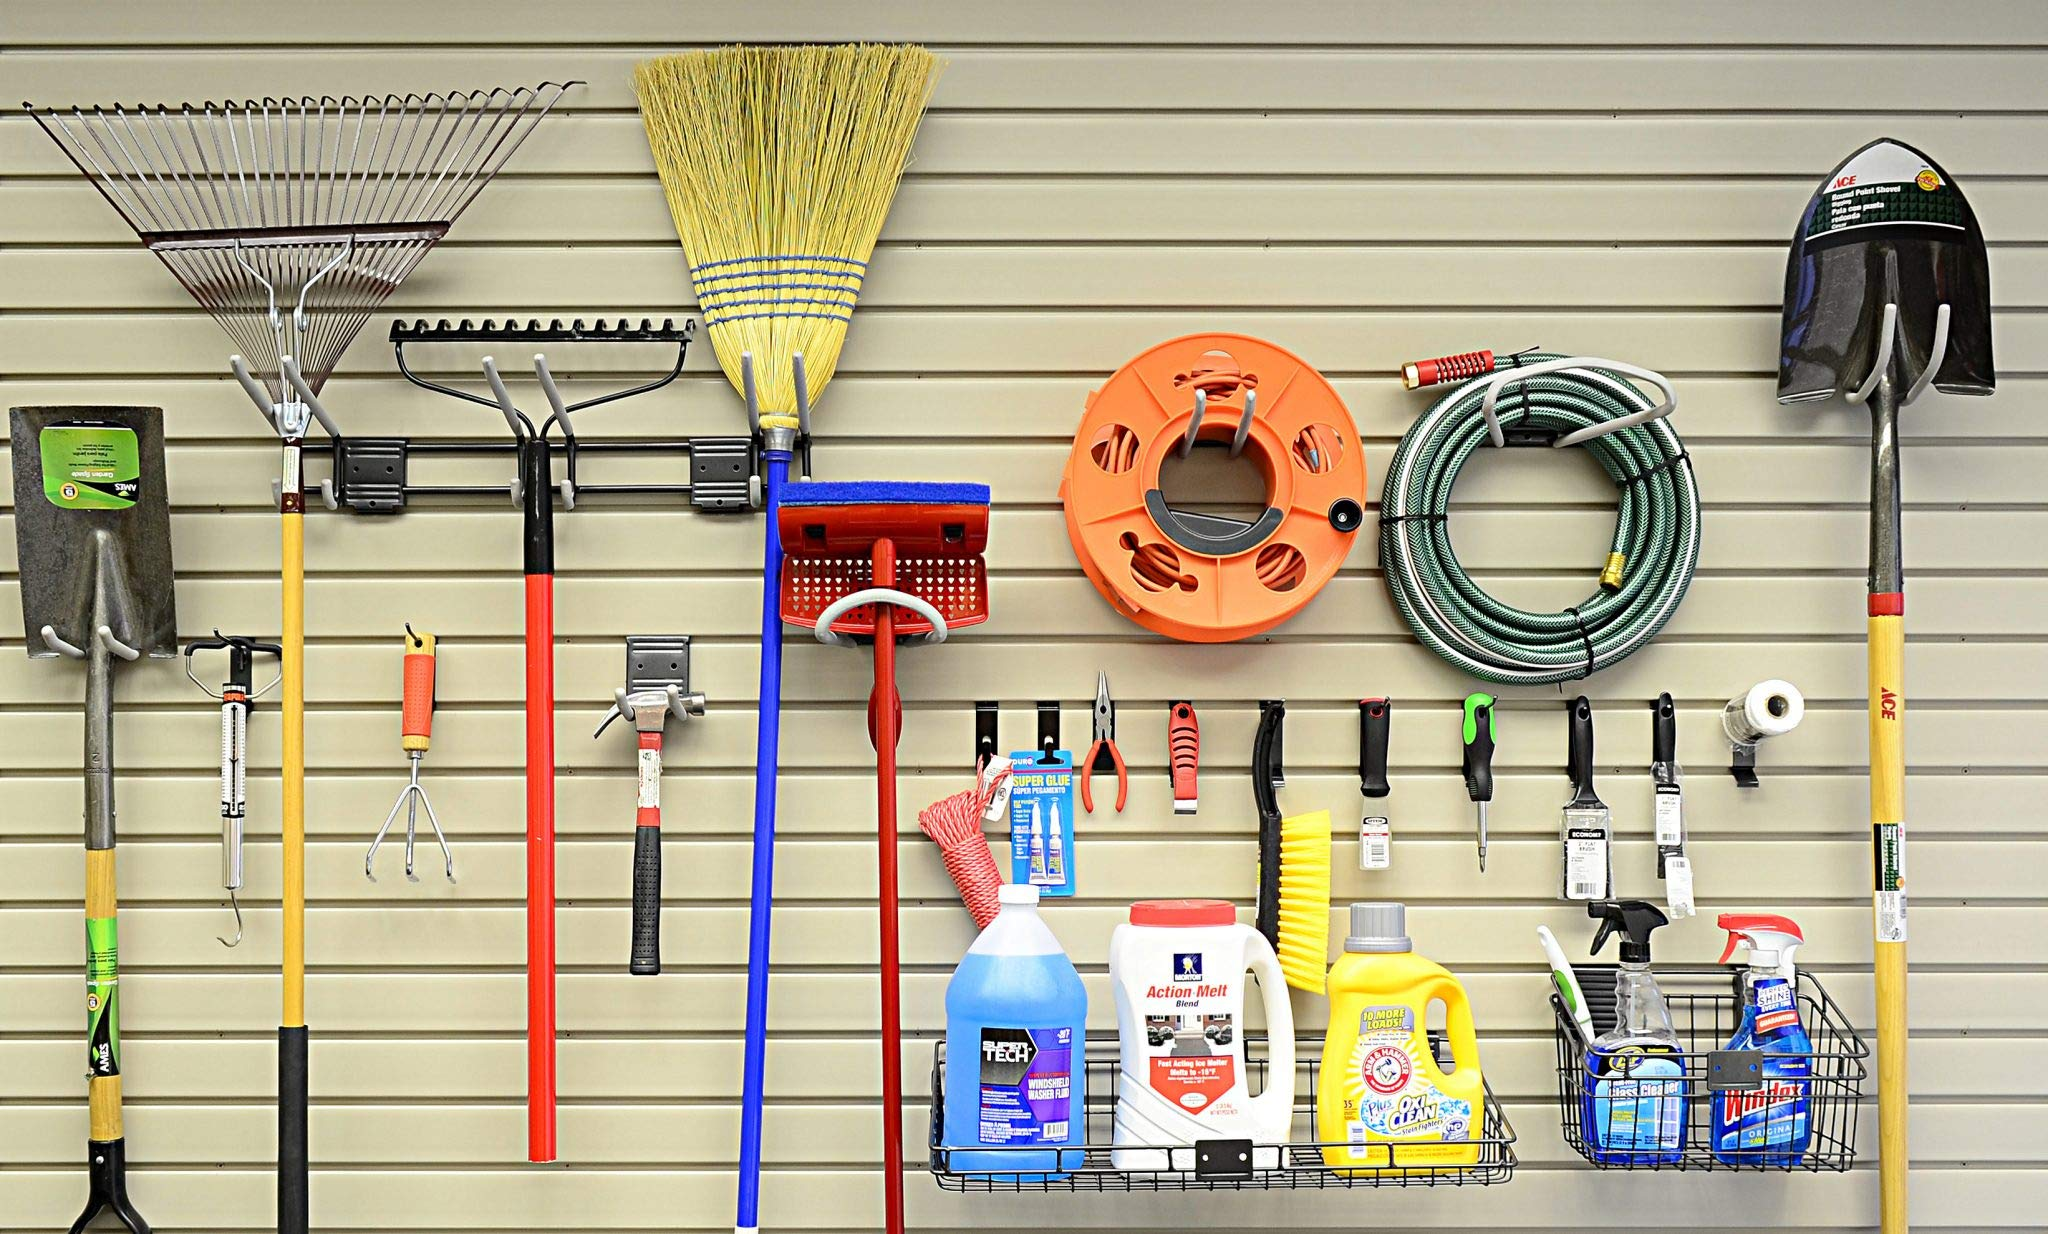 HandiWall Locking Hook Basic Accessory Kit With 21 Locking Hooks, Baskets, and Shelves for Garage Slatwall Panels by HandiSolutions